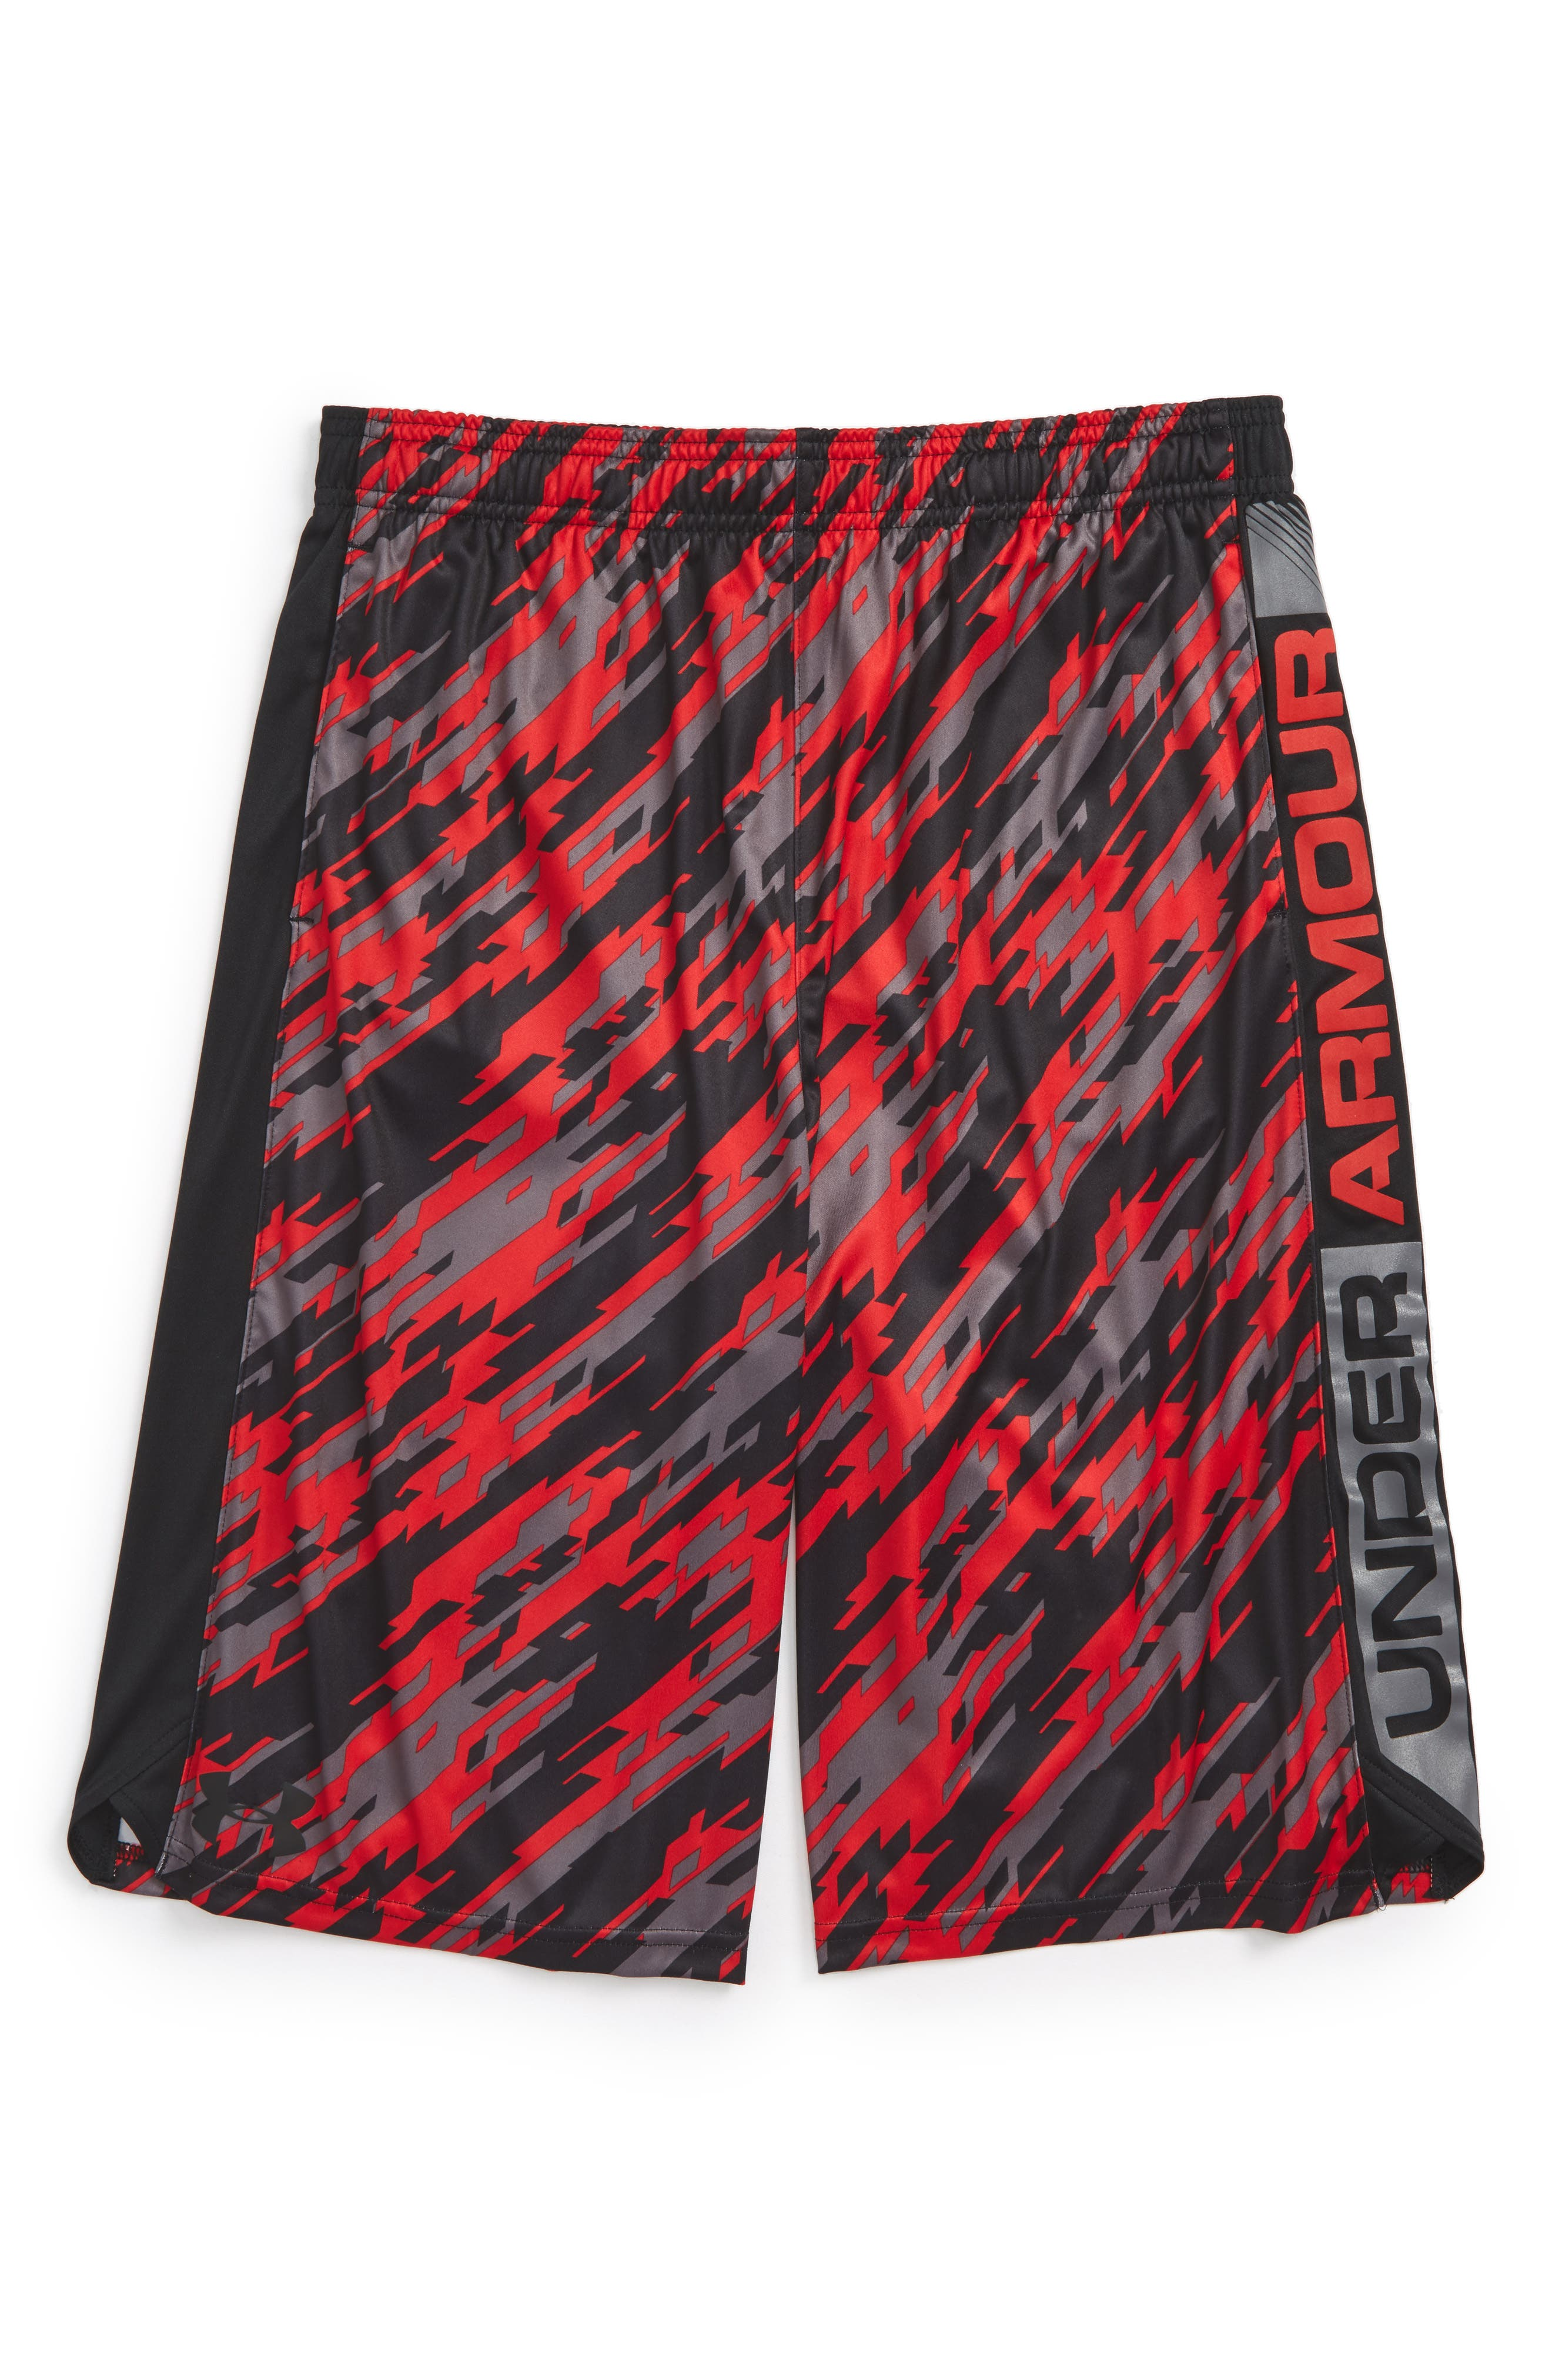 Eliminator Athletic HeatGear<sup>®</sup> Shorts,                         Main,                         color, Red/ Black/ Red